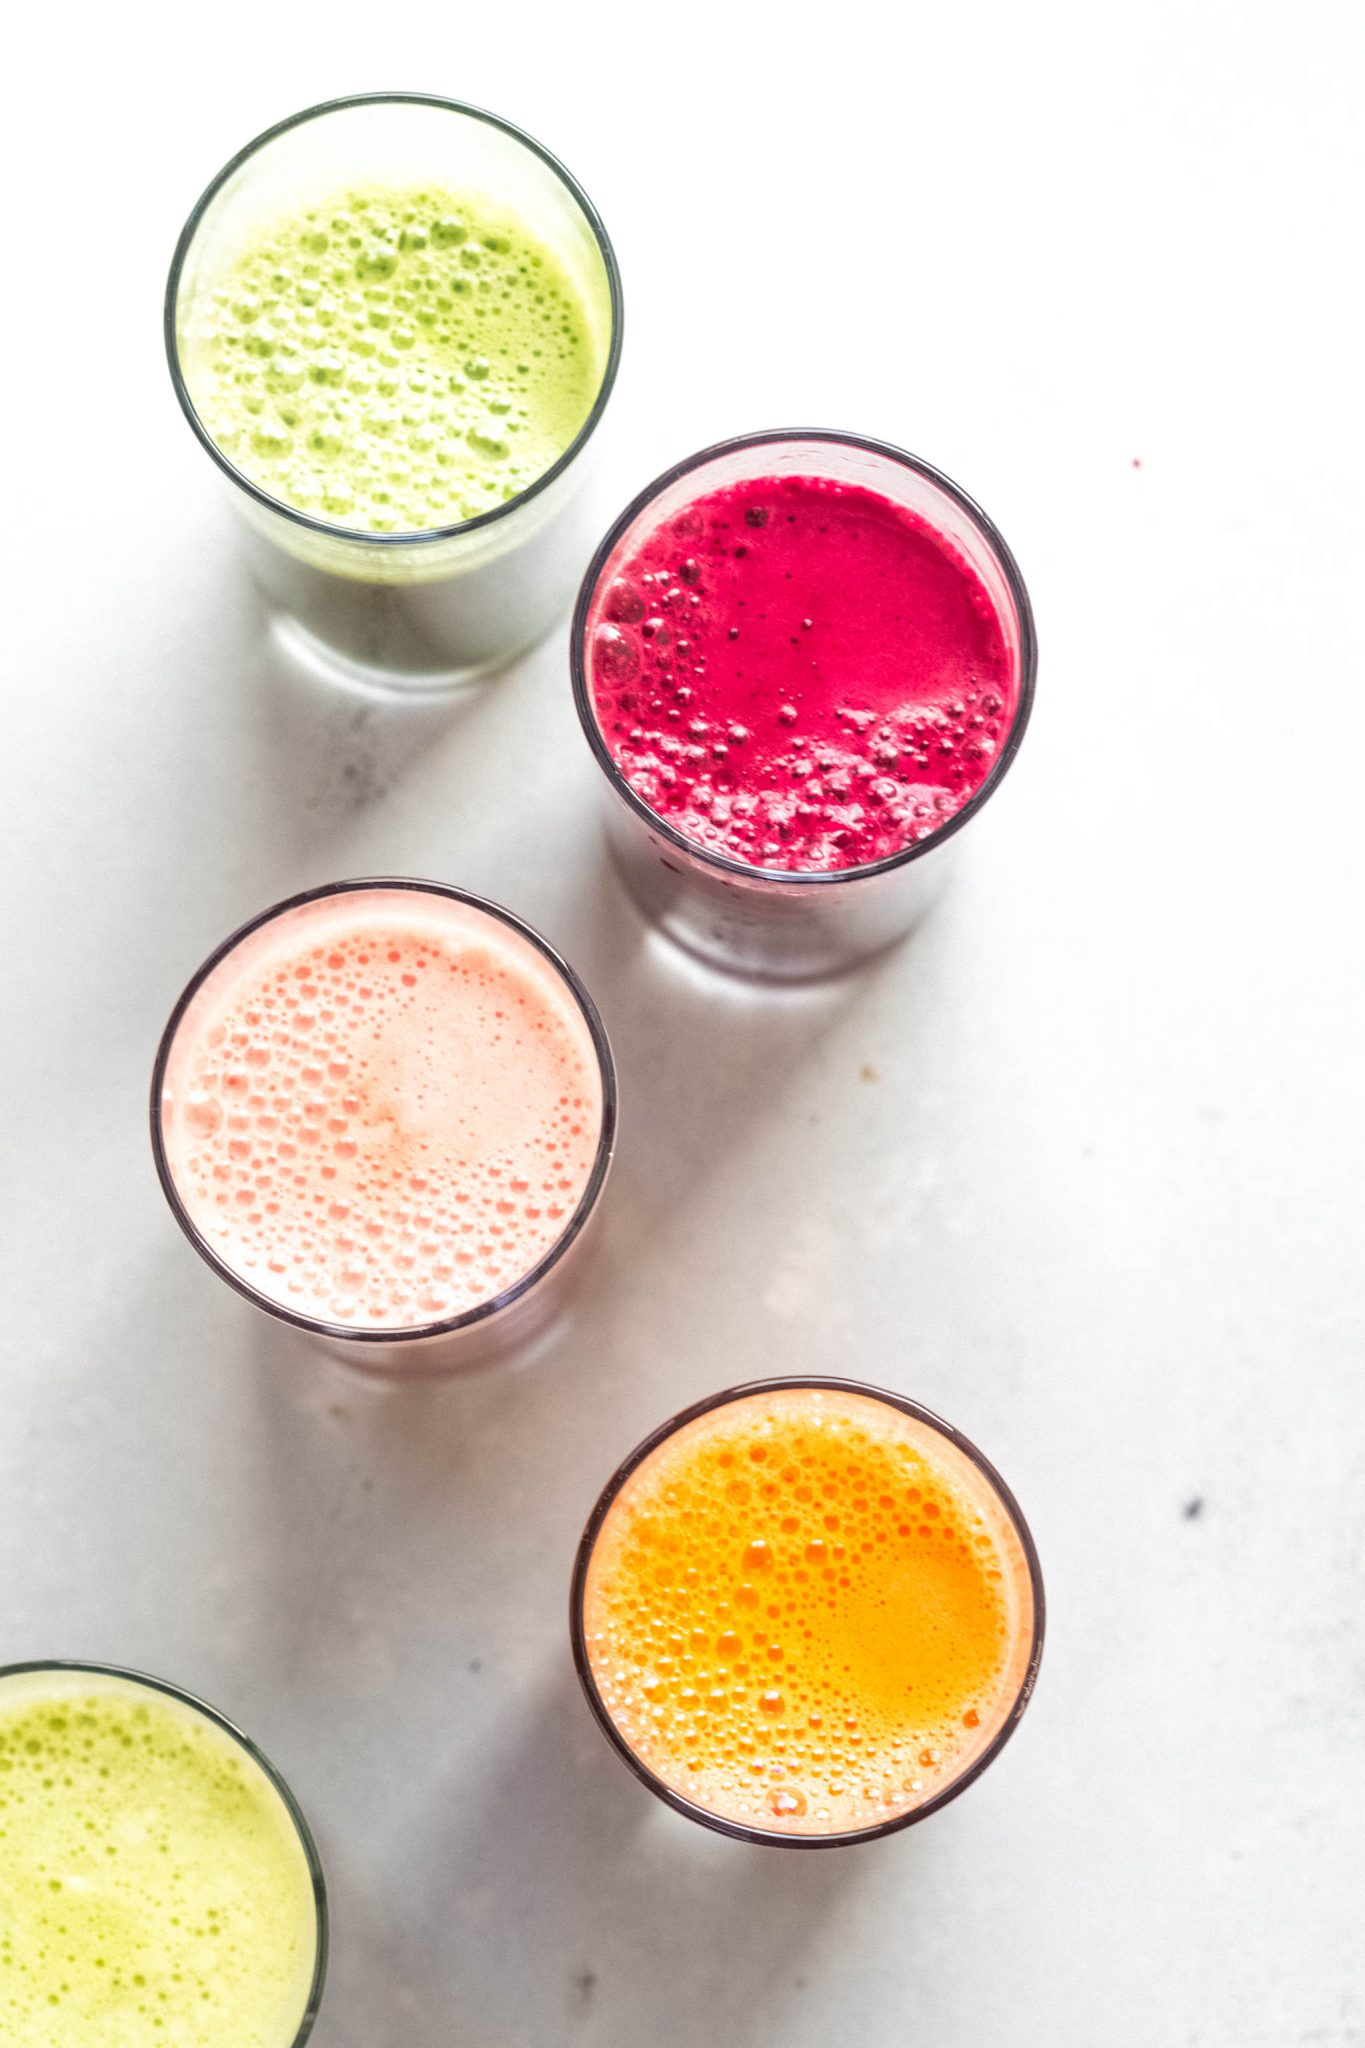 Five different colorful juices in a row shot from overhead.